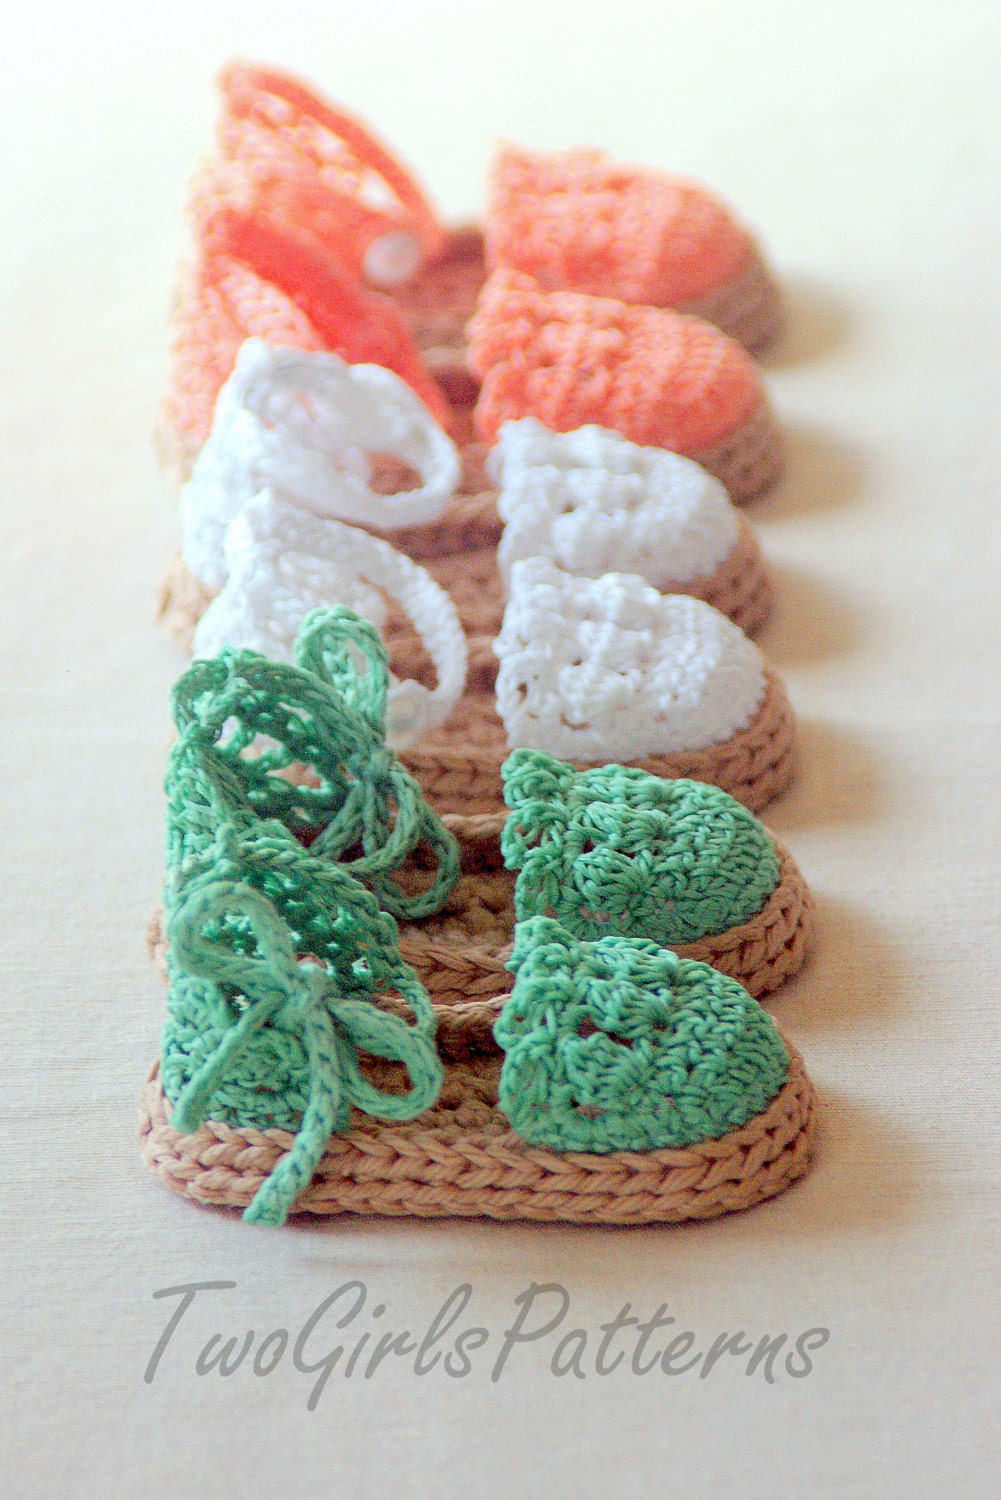 Crochet Pattern Software Free Download : Instant download Crochet PATTERN pdf file Summer Sandals